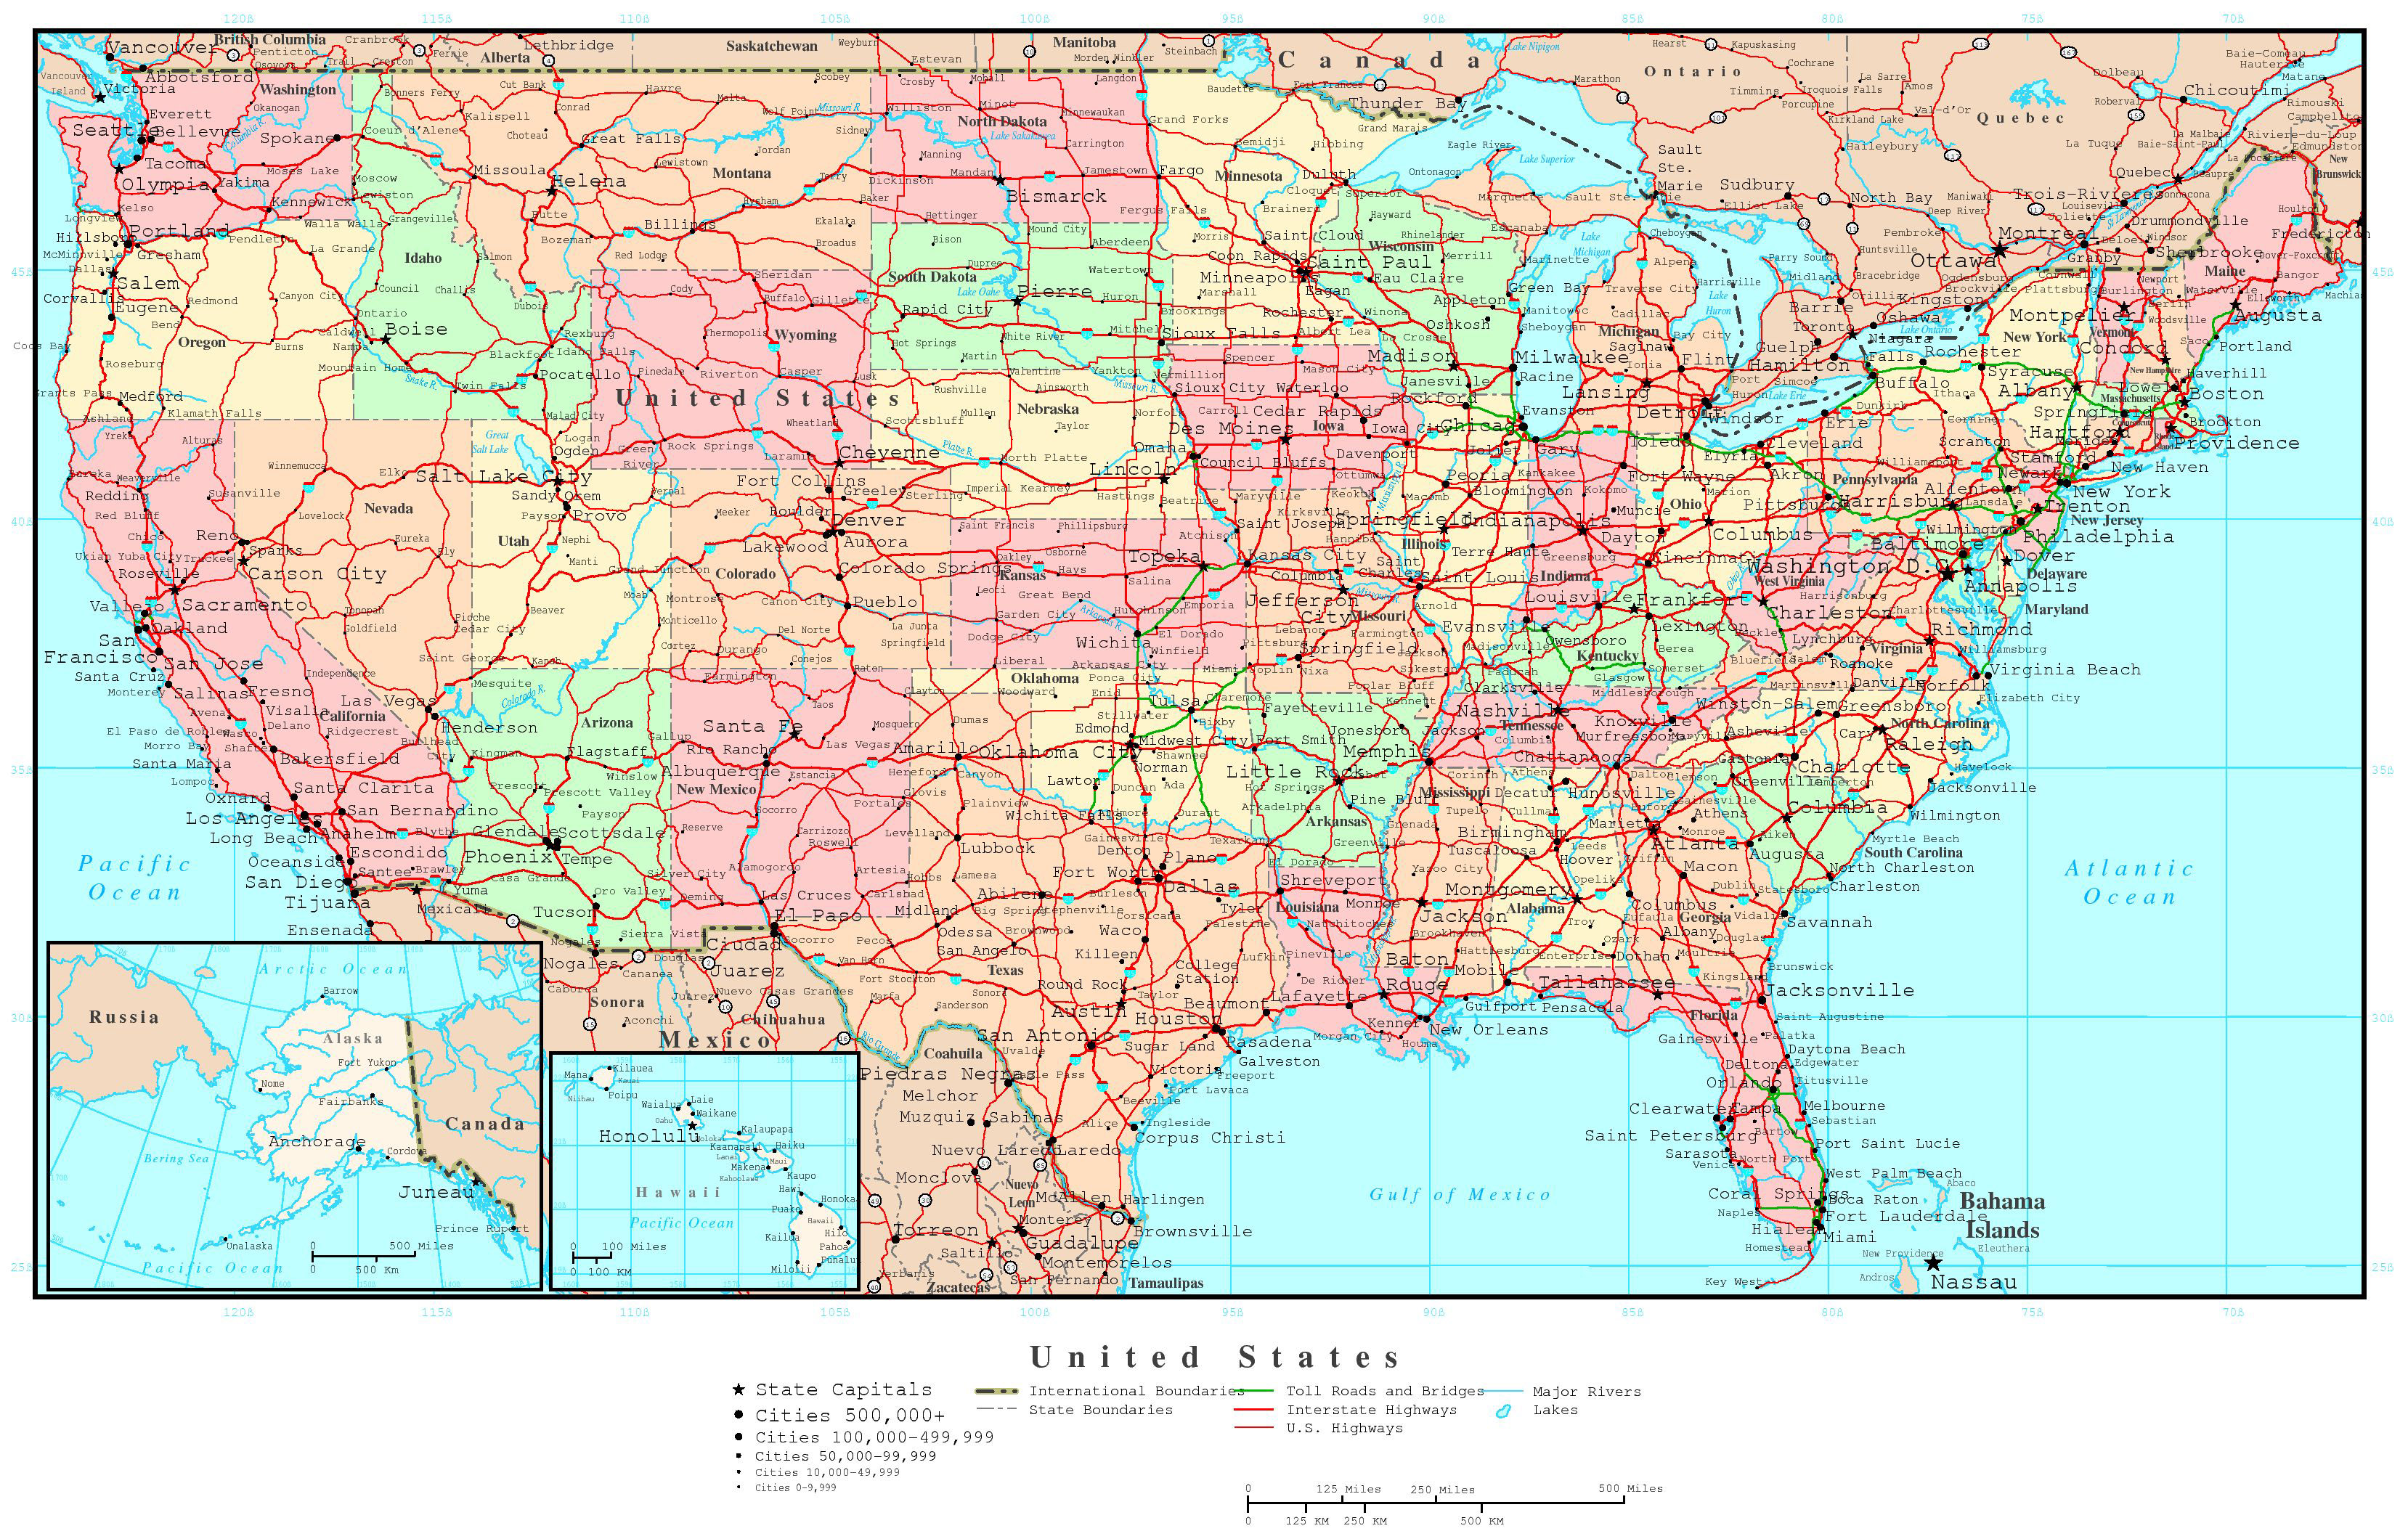 15 United States Of America Map HD Wallpapers | Background Images ...